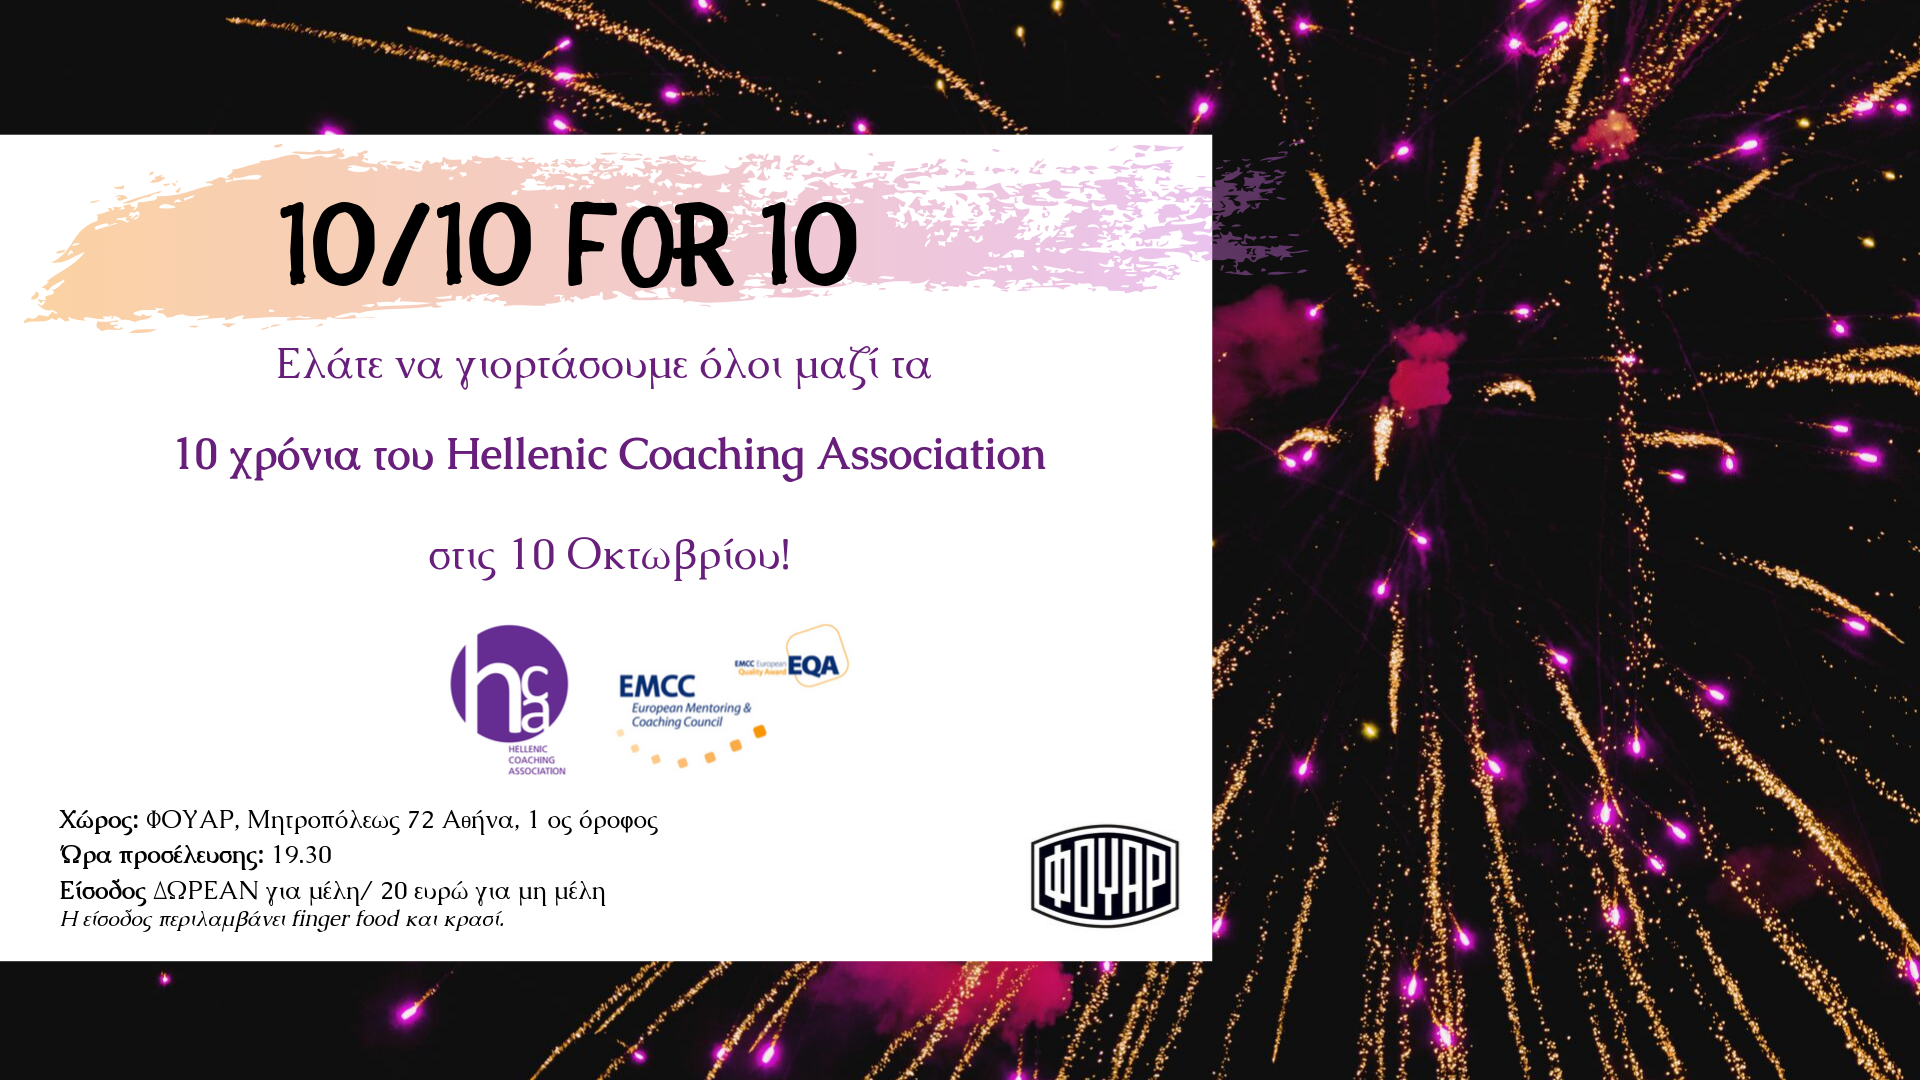 10 χρόνια HCA/ EMCC Greece